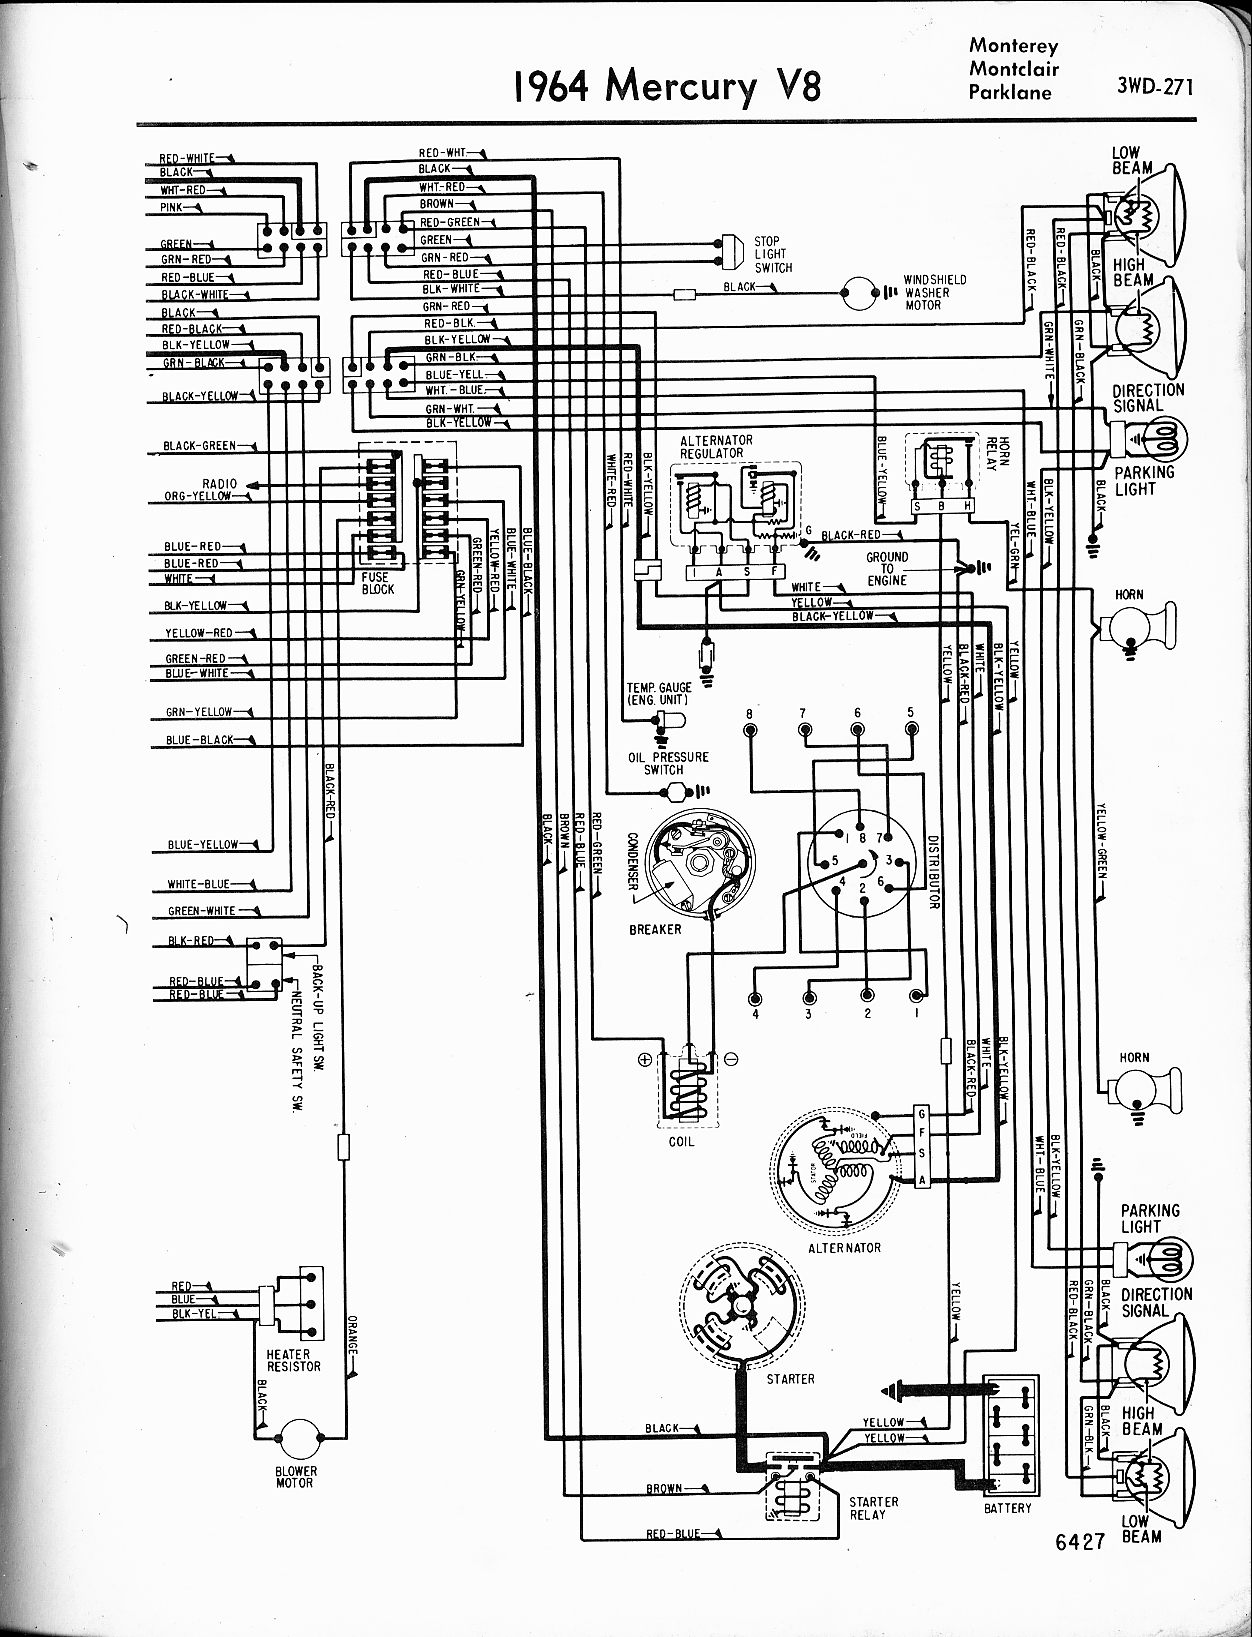 1966 johnson outboard wiring diagram 85 hp johnson outboard diagram rh banyan palace com